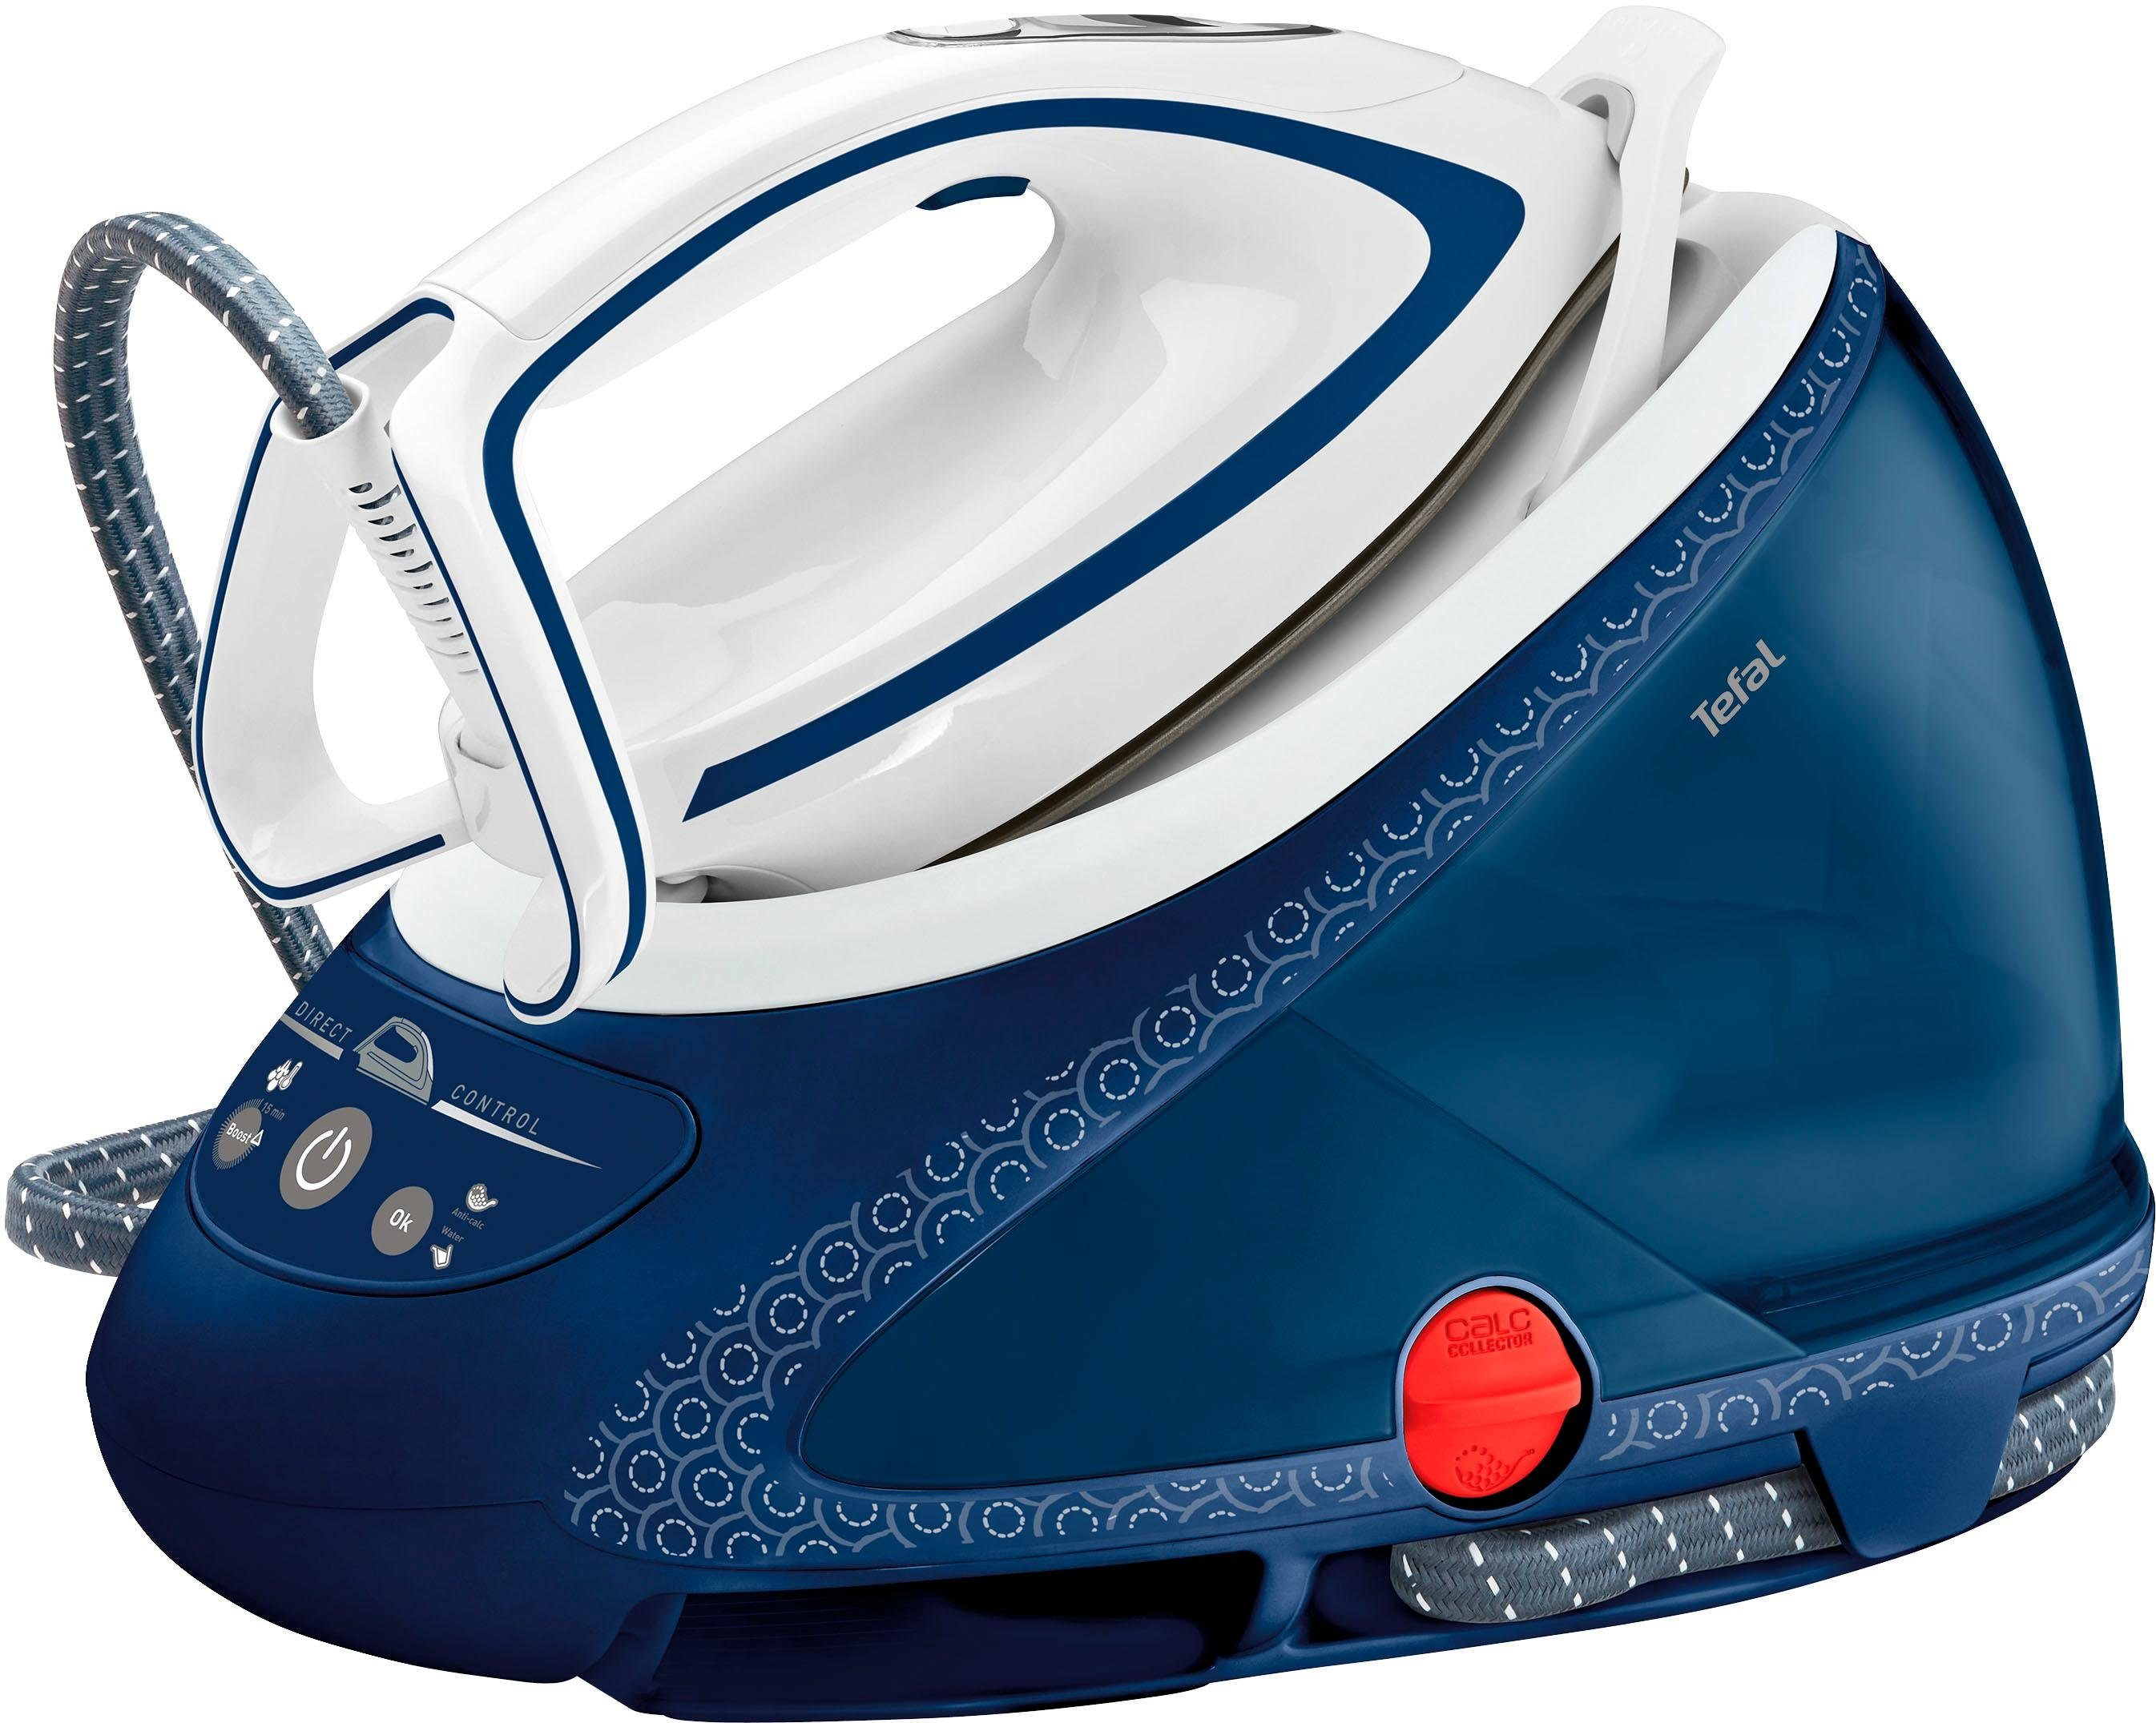 Tefal Dampfbügelstation Pro Express Ultimate Care GV9580, 1900 ml Wassertank